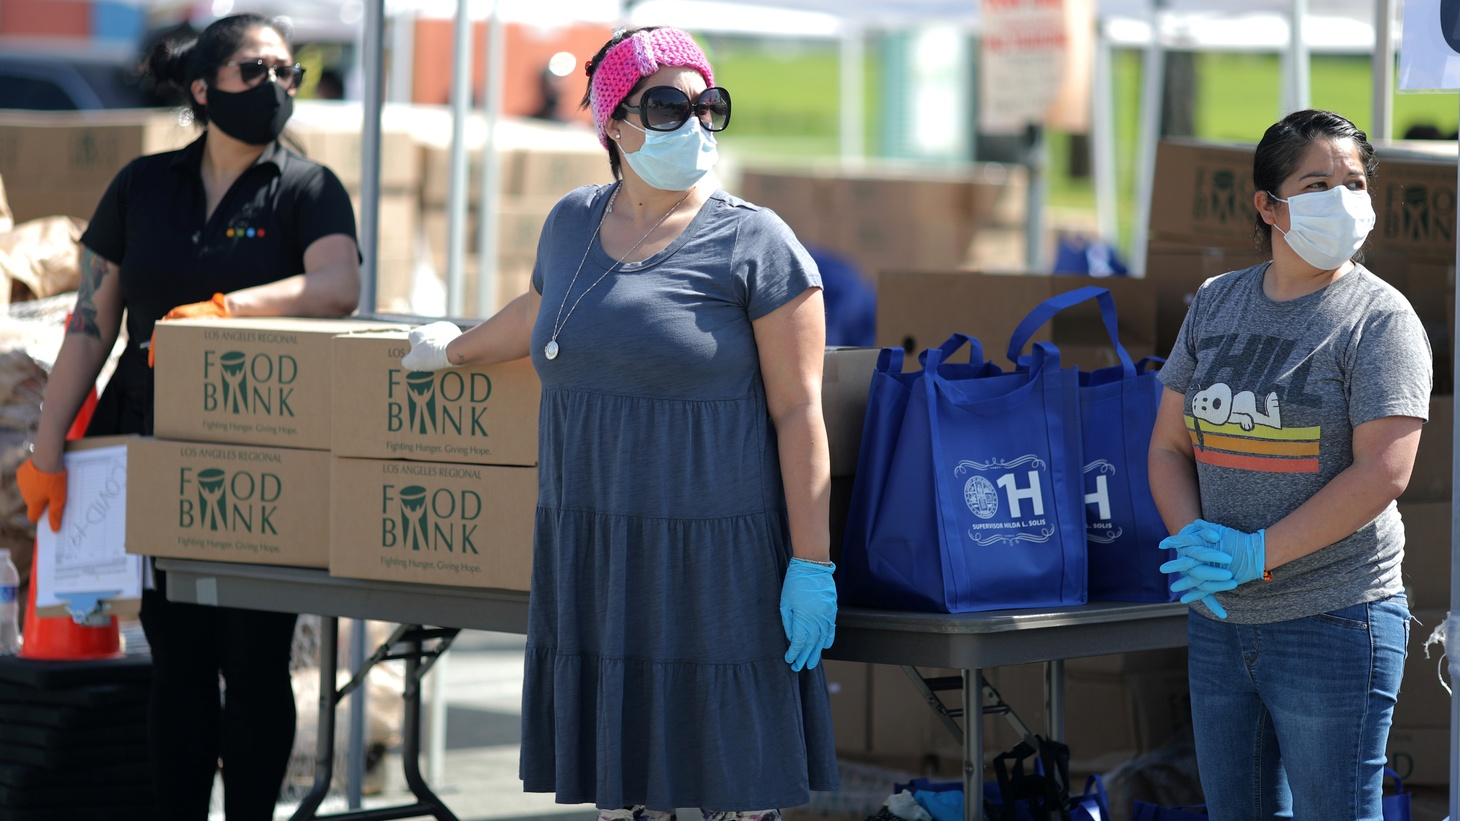 Volunteers at Los Angeles Food Bank hand out supplies at a drive-through food giveaway as the global outbreak of coronavirus disease (COVID-19) continues, in Los Angeles, California, U.S., April 21, 2020.